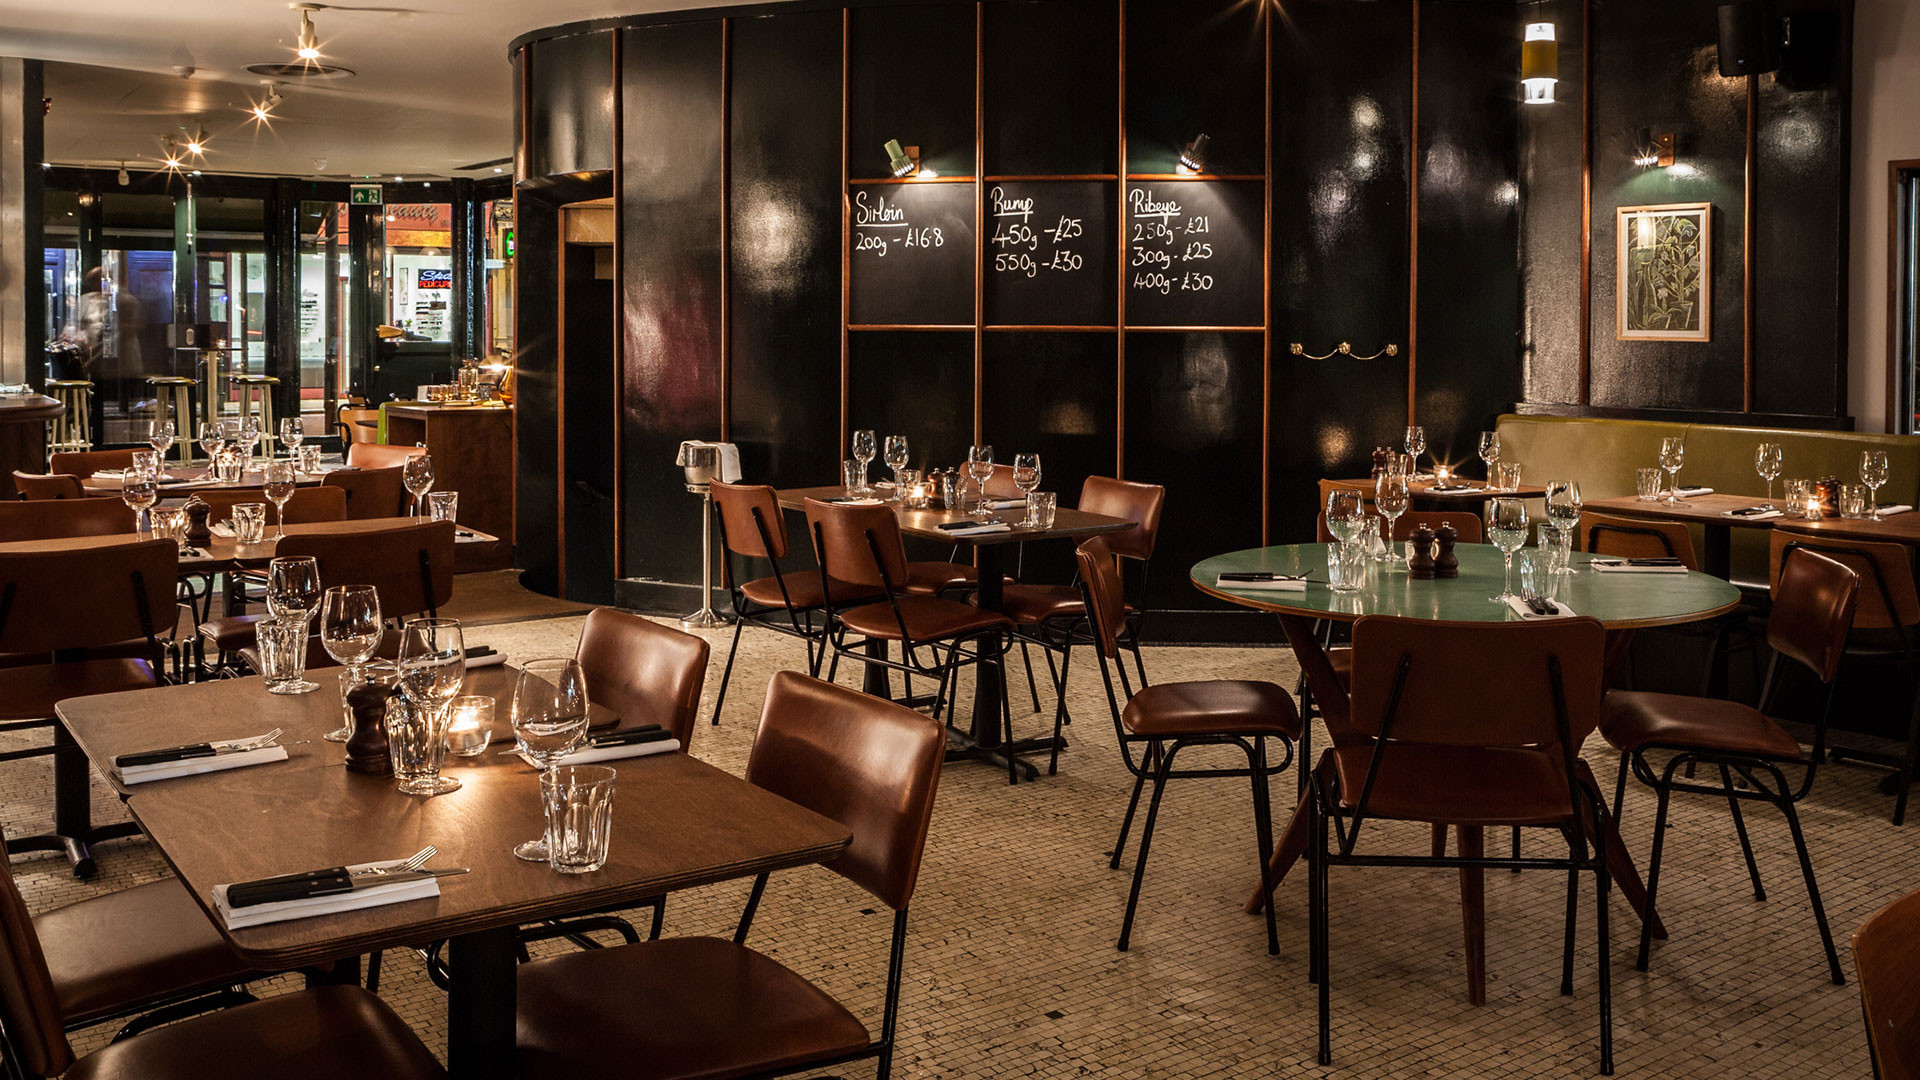 The sleek interiors at Foxlow